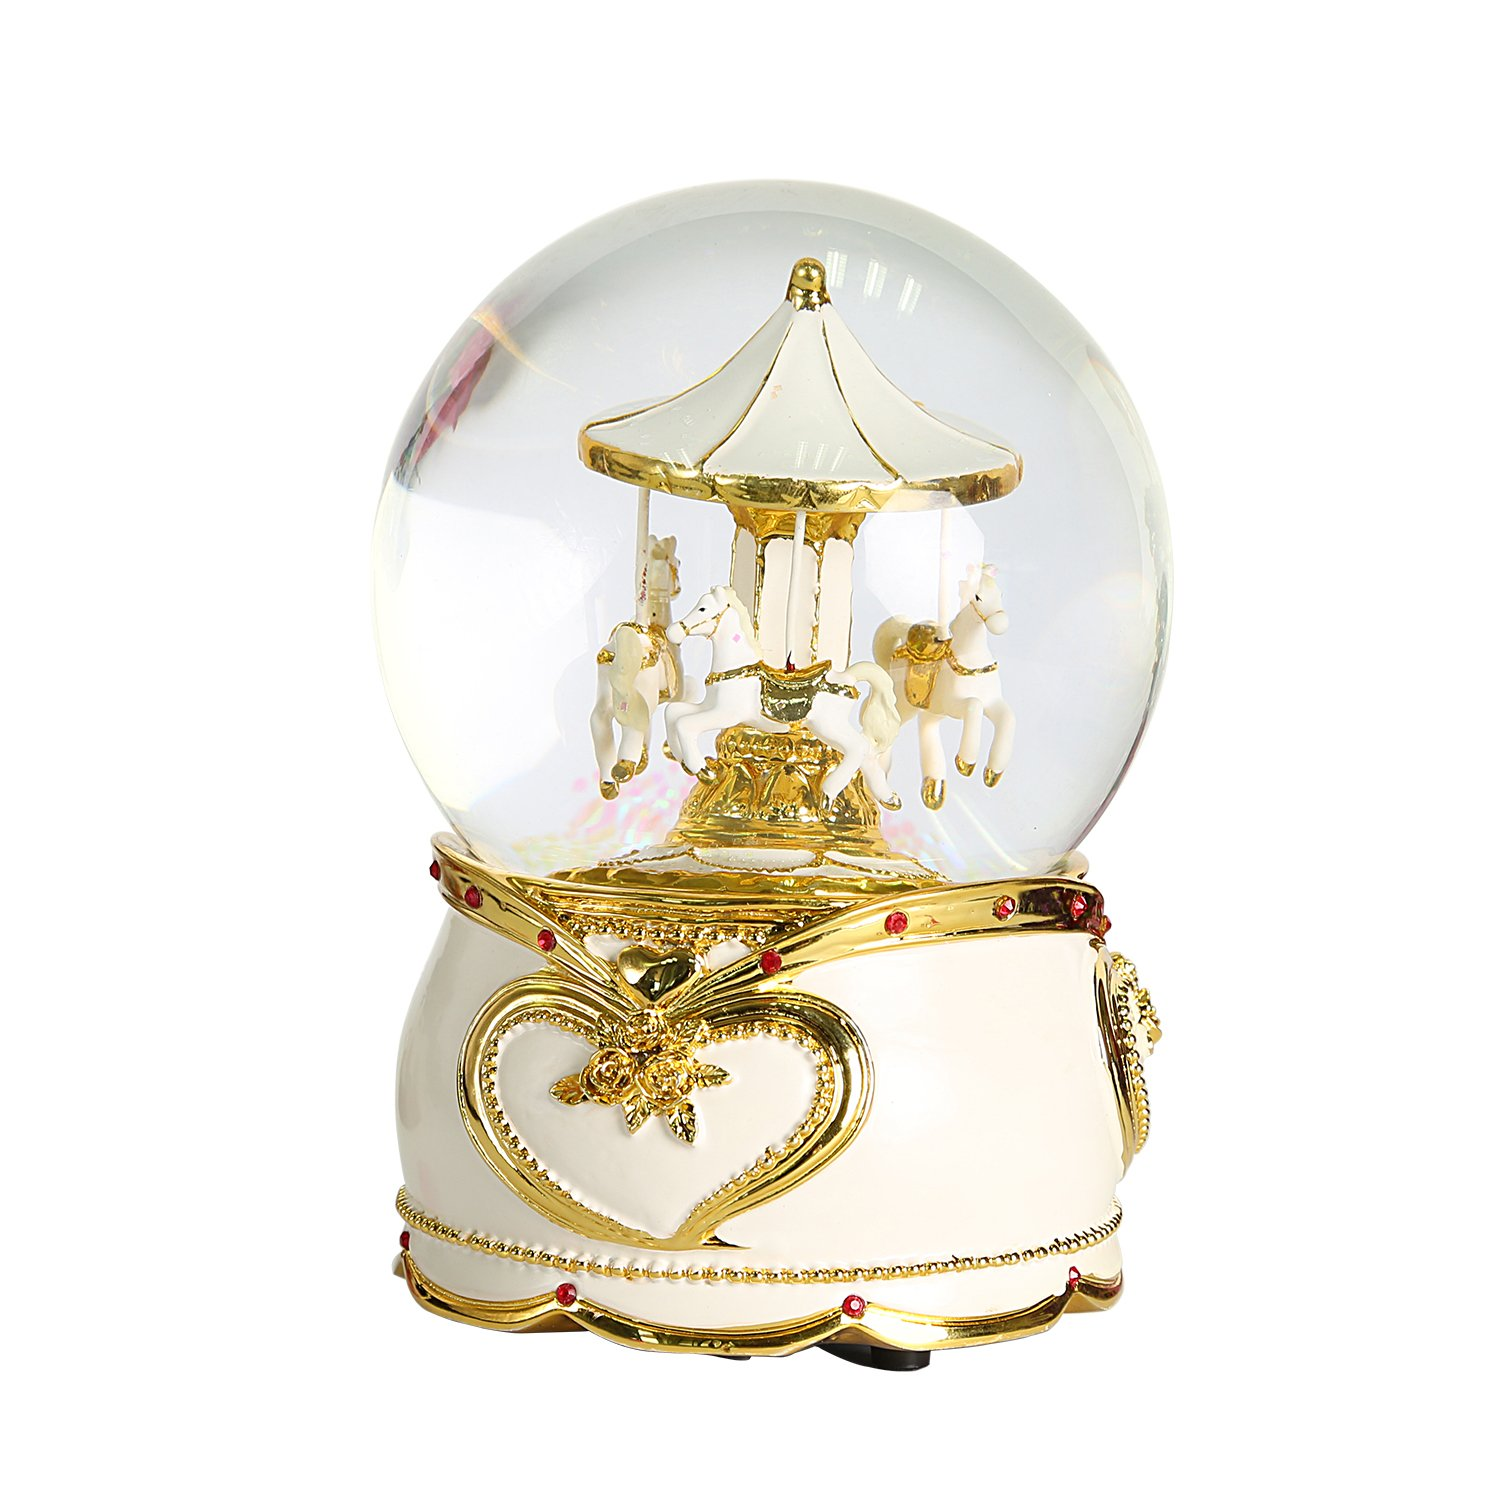 NON ROCK Carousel Horse Crystal Ball Christmas Musical Box Luxury Small Color Change Luminous Rotating